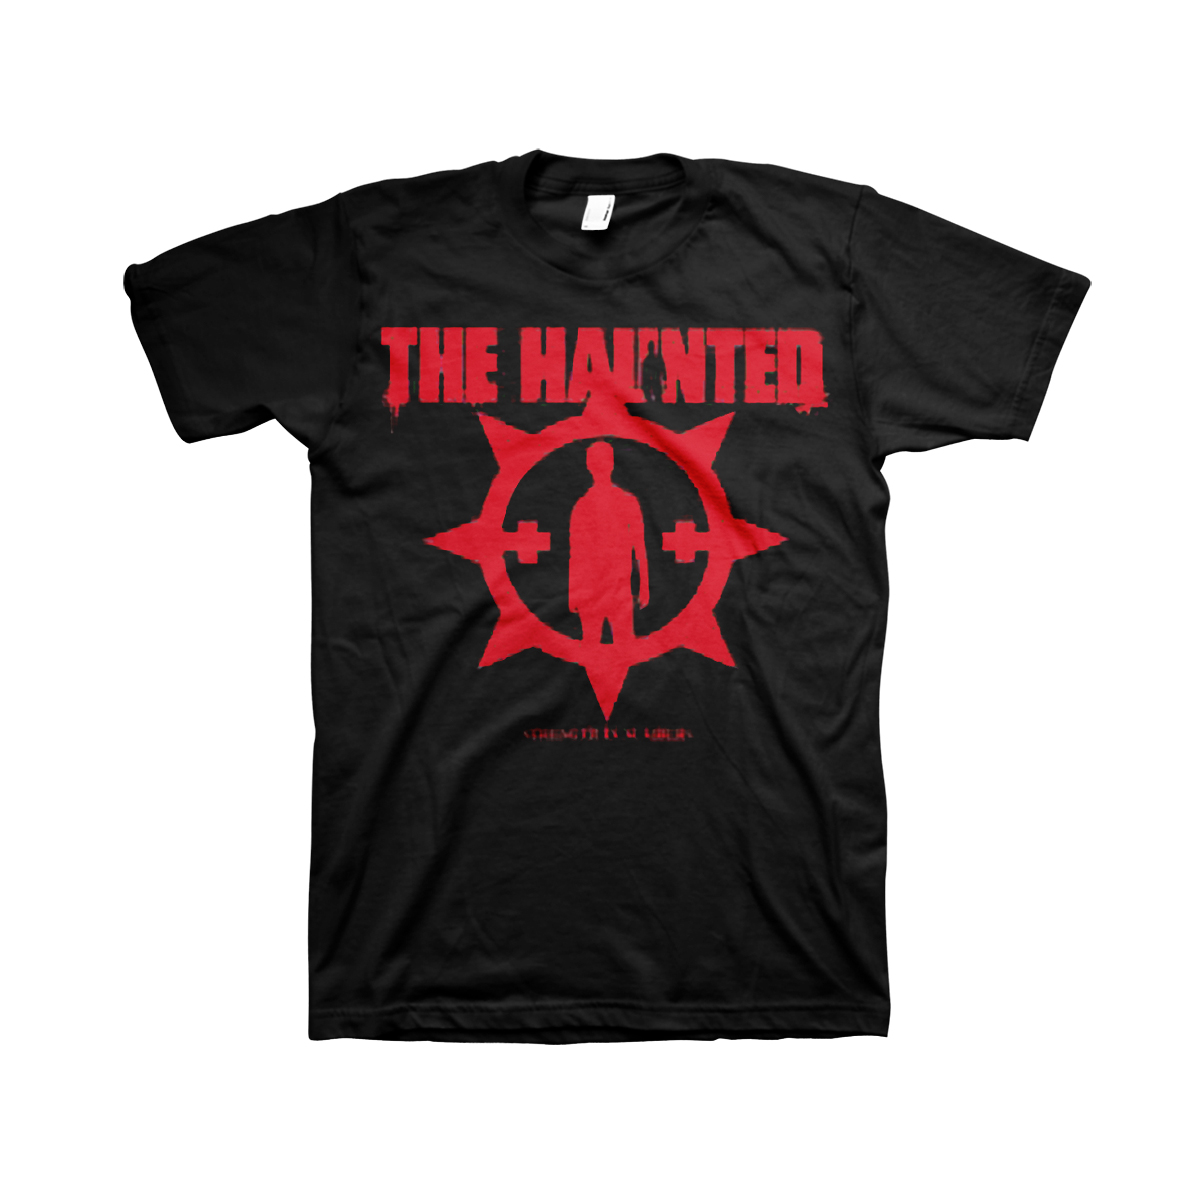 The Haunted - Strength In Numbers T-Shirt